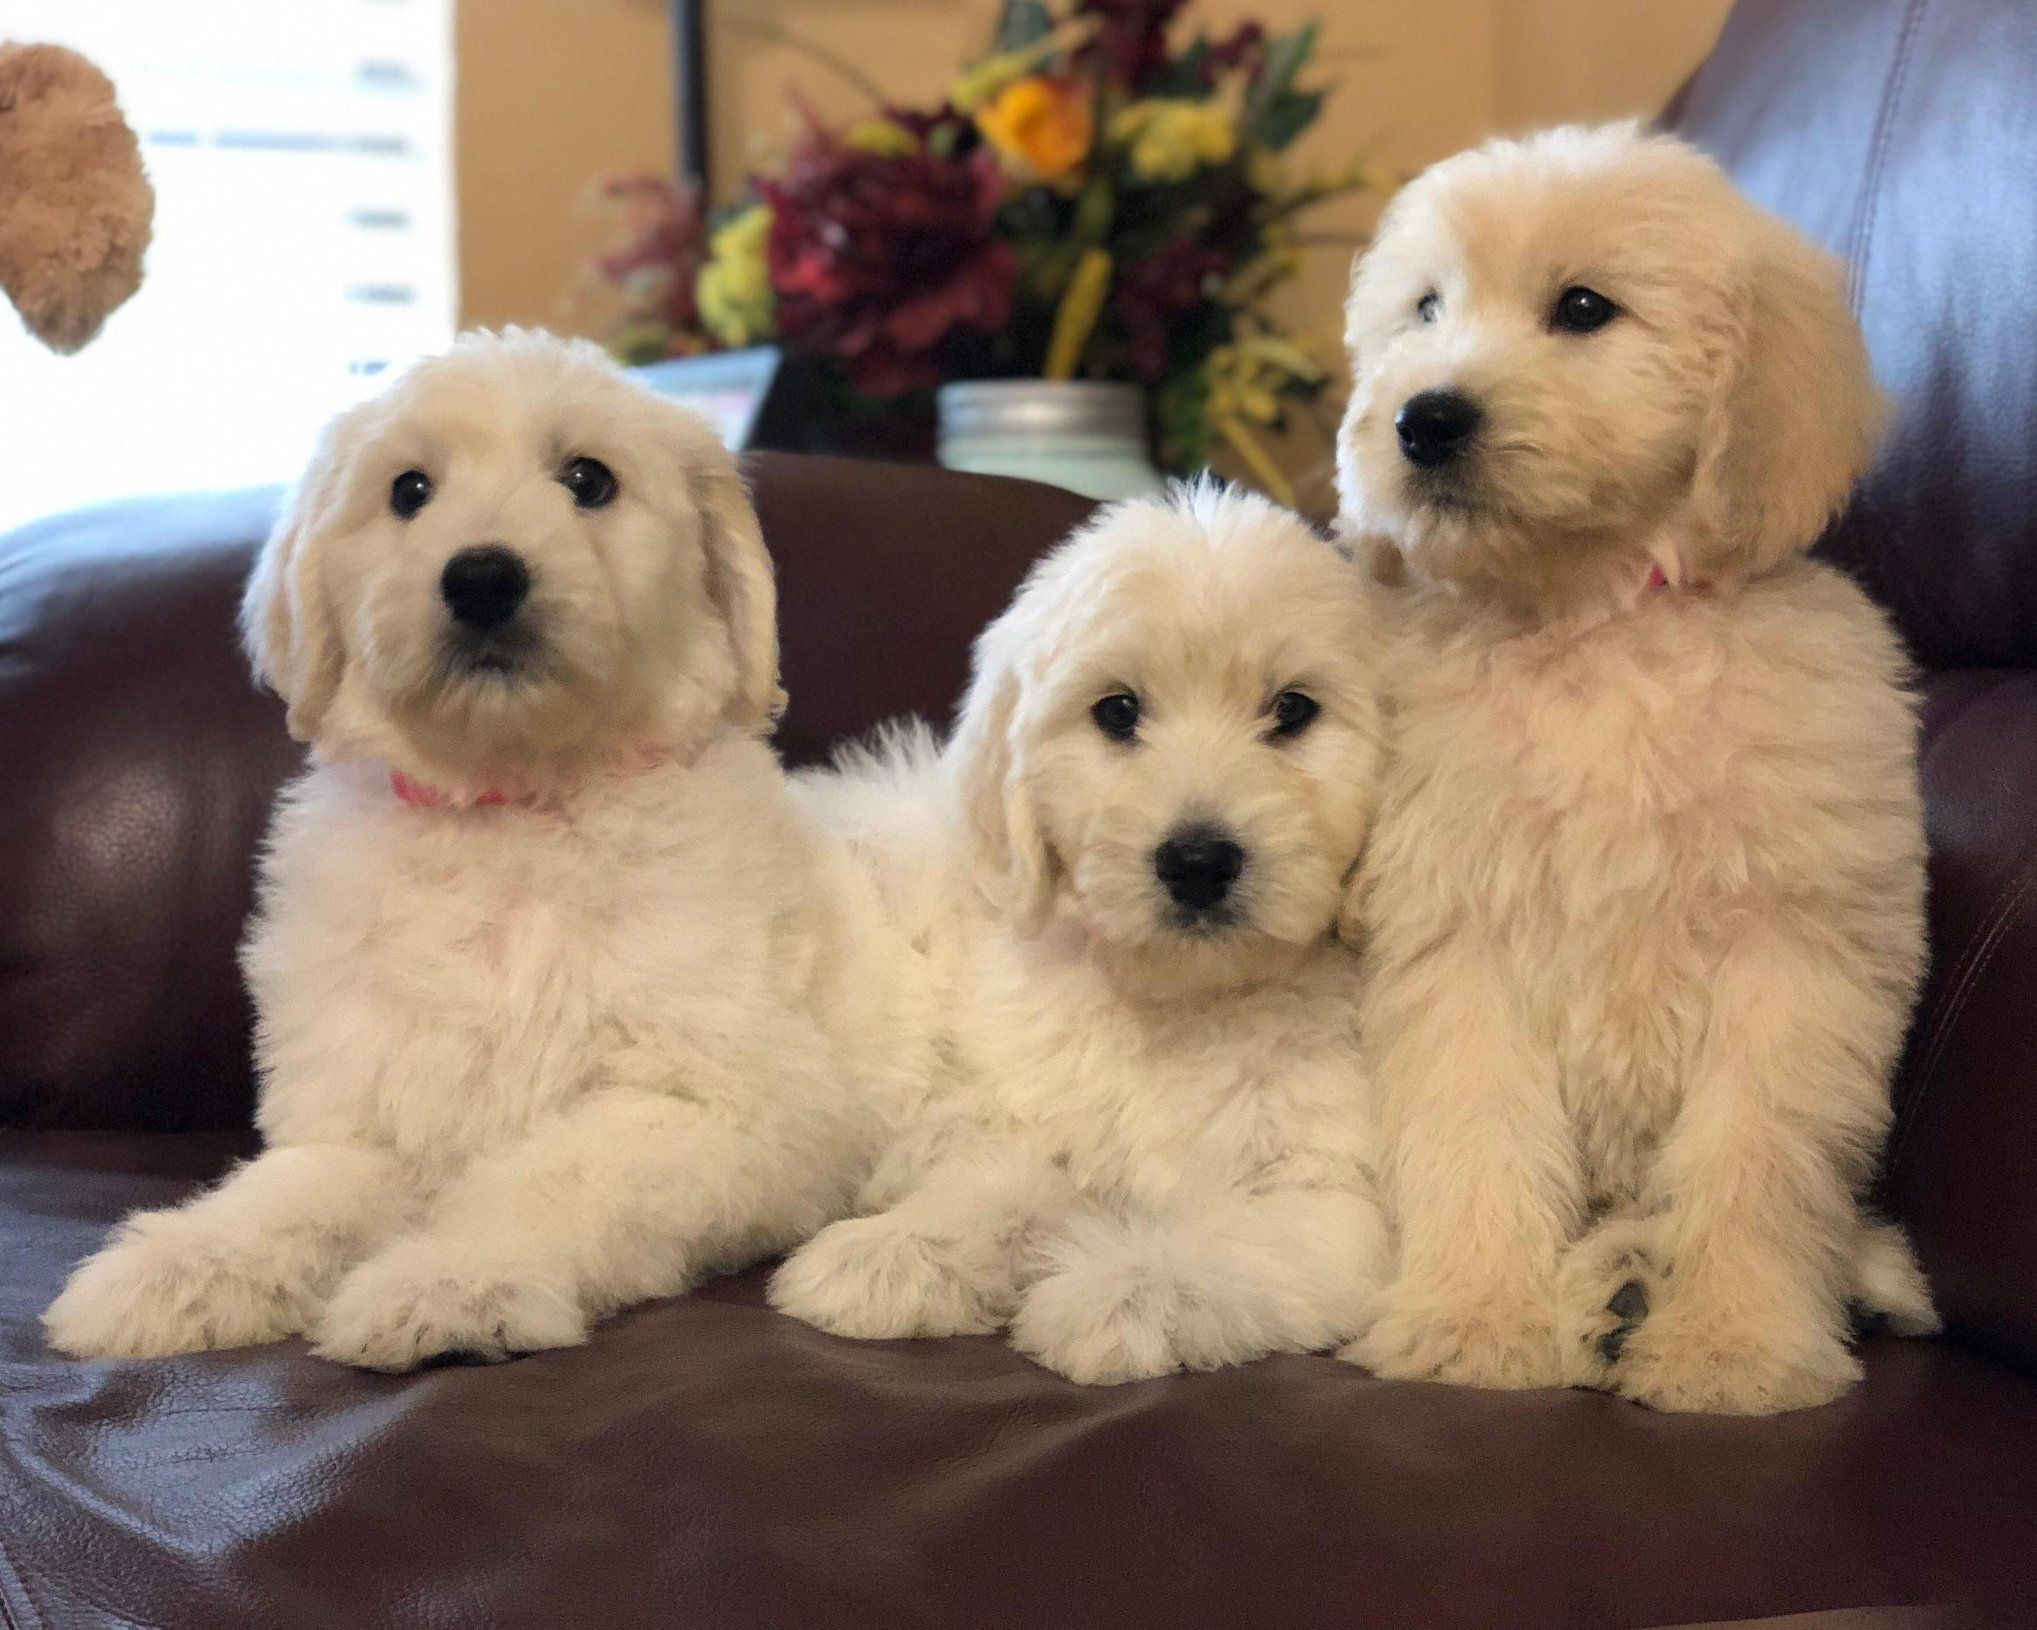 English F1 Goldendoodles from Moss Creek Goldendoodles